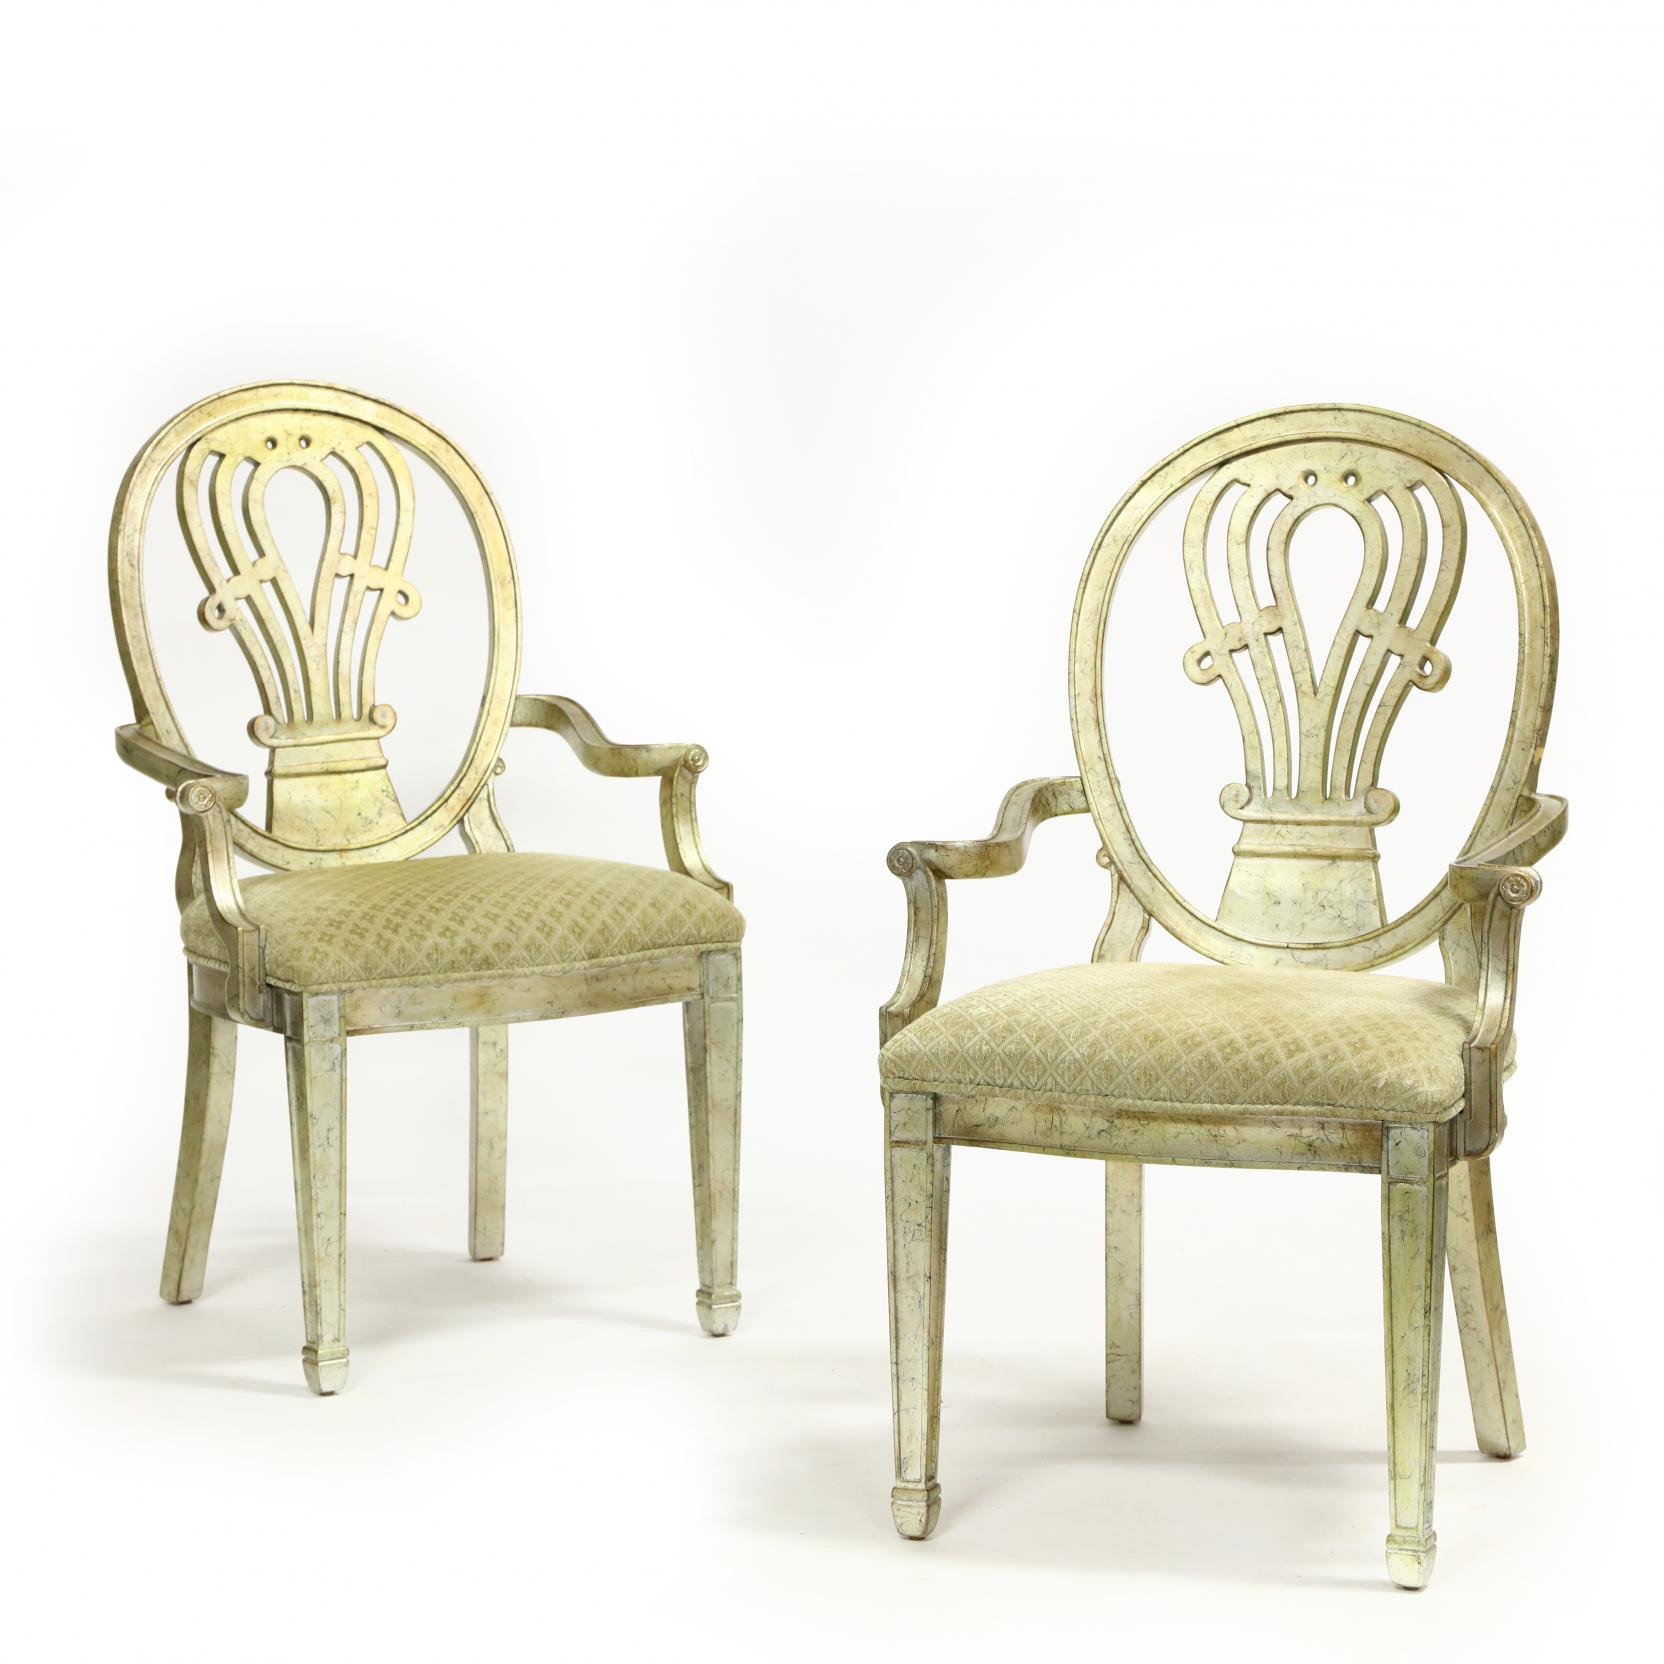 pair-of-silver-leaf-arm-chairs